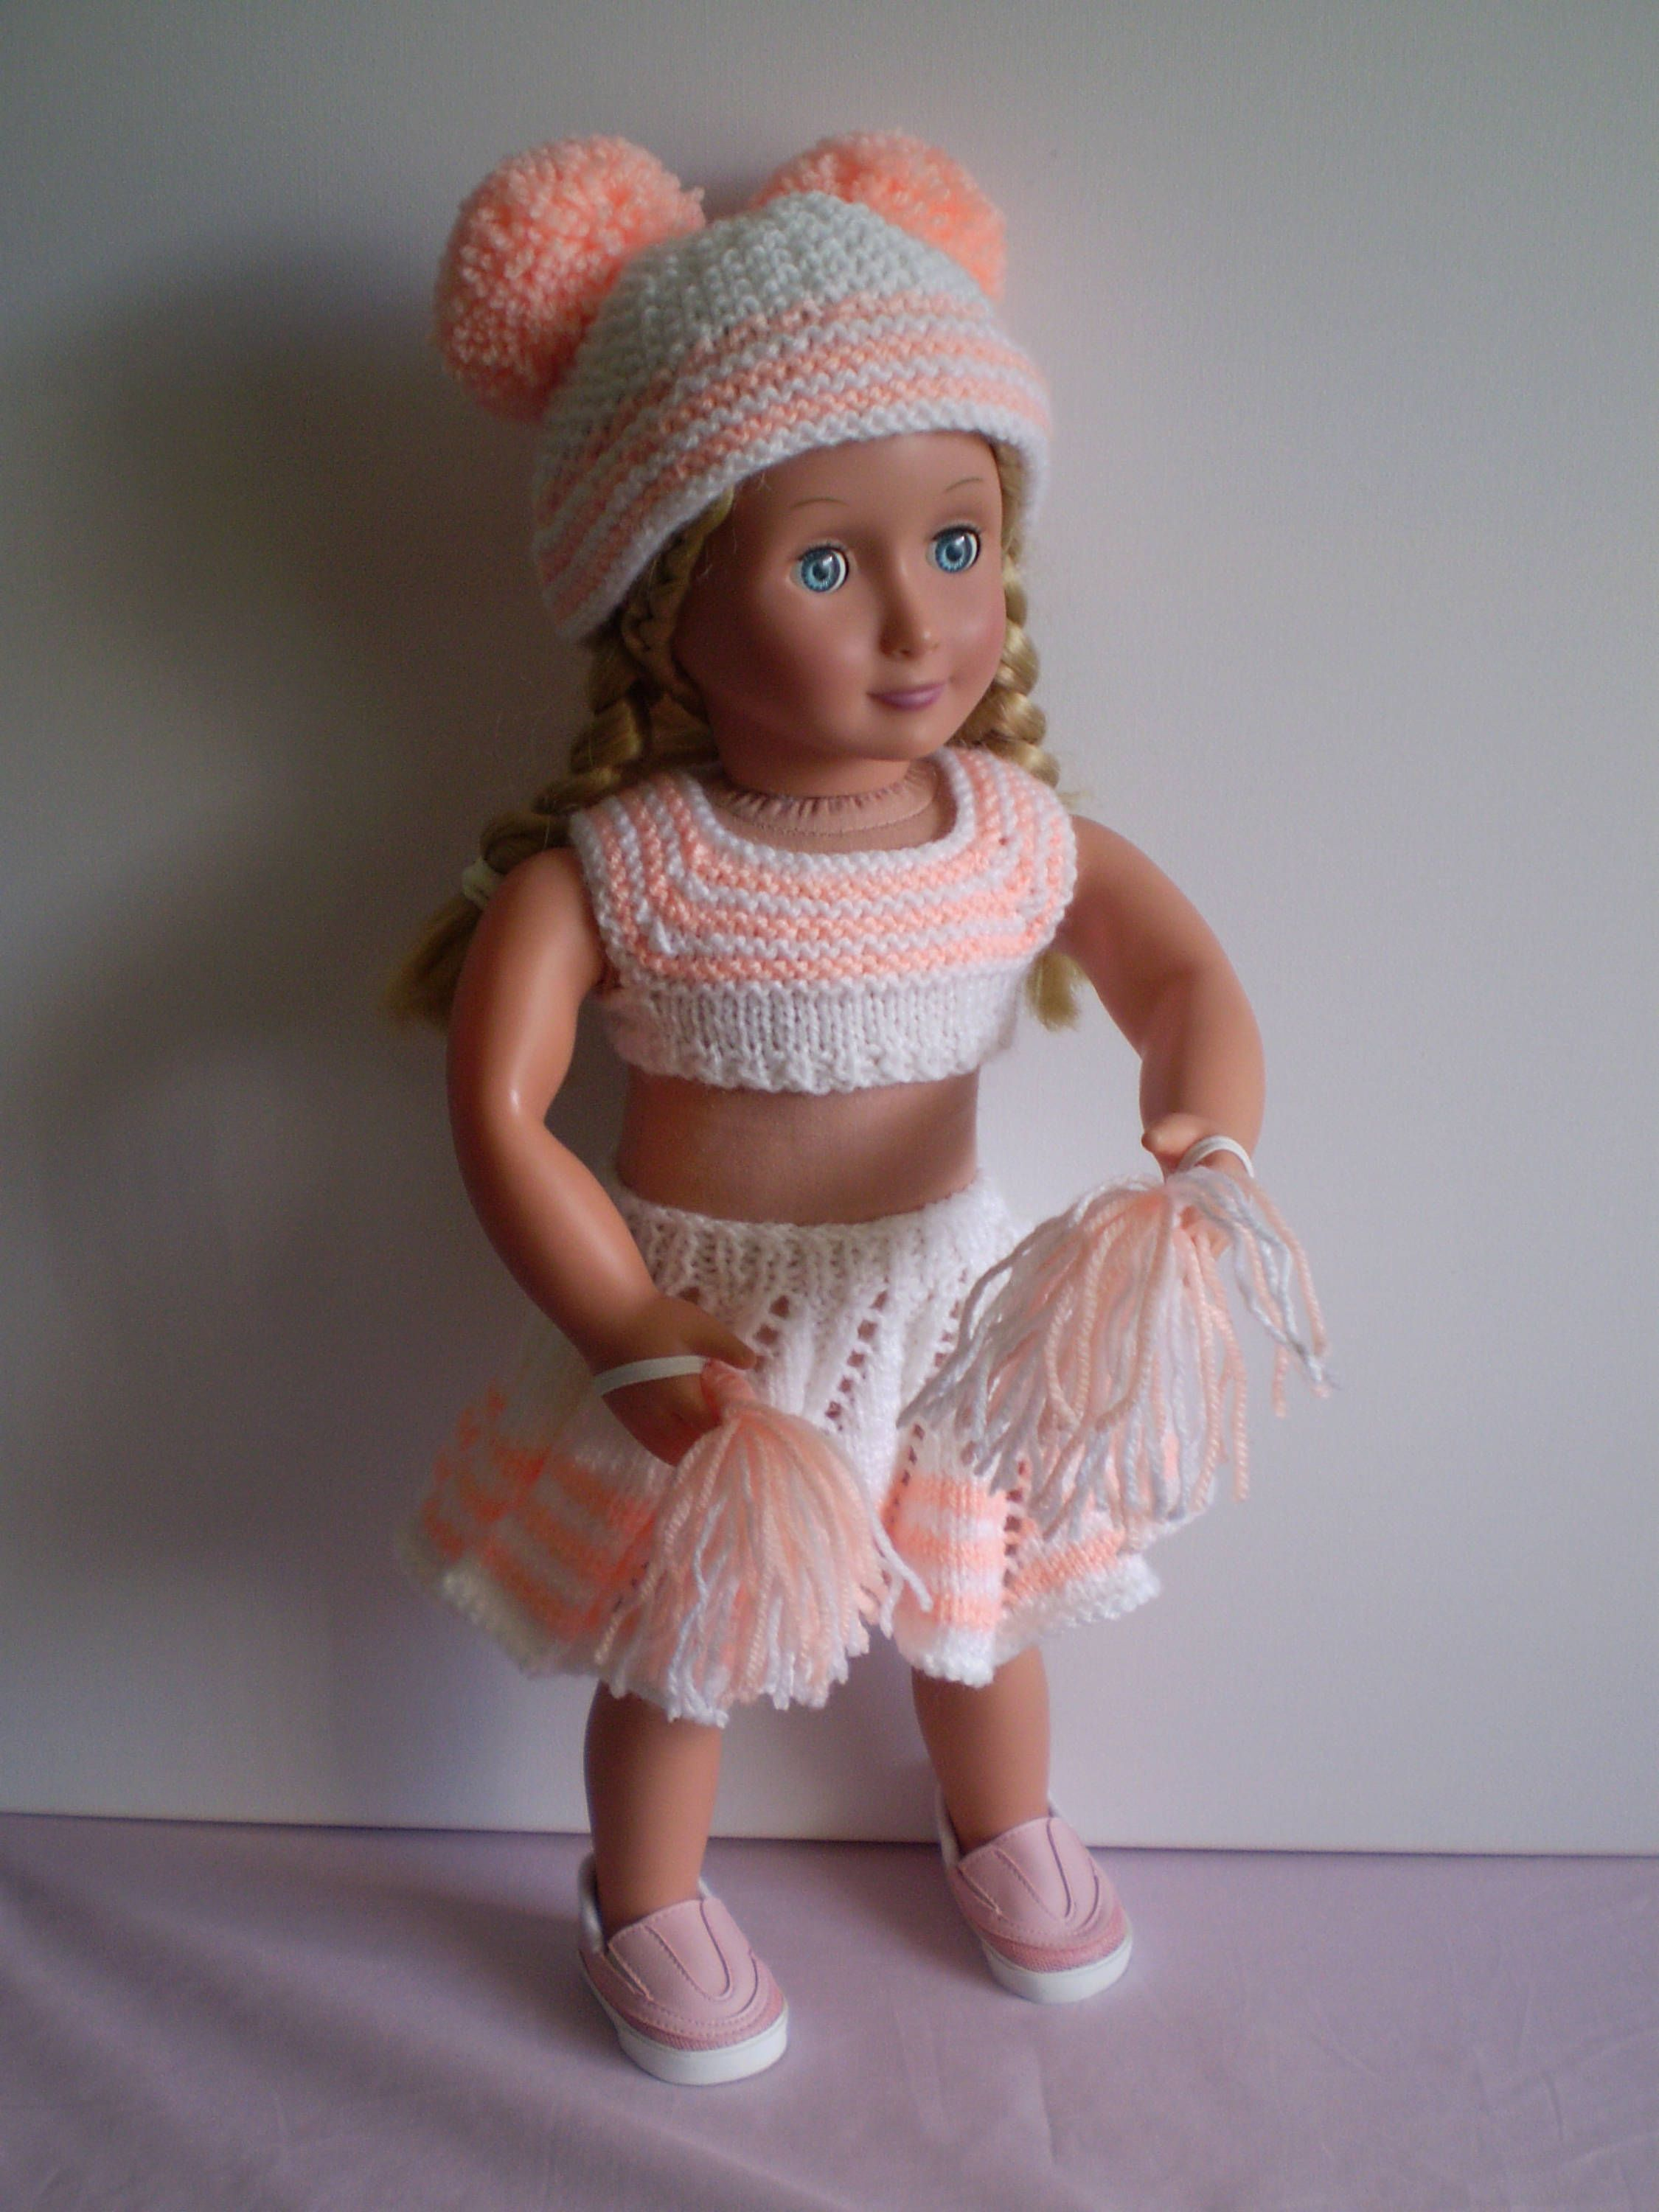 Hand knitted 18 inch Cheerleader outfit for poplar dolls #18inchcheerleaderclothes Hand knitted 18 inch Cheerleader outfit for poplar dolls by cazjeanknitting on Etsy #18inchcheerleaderclothes